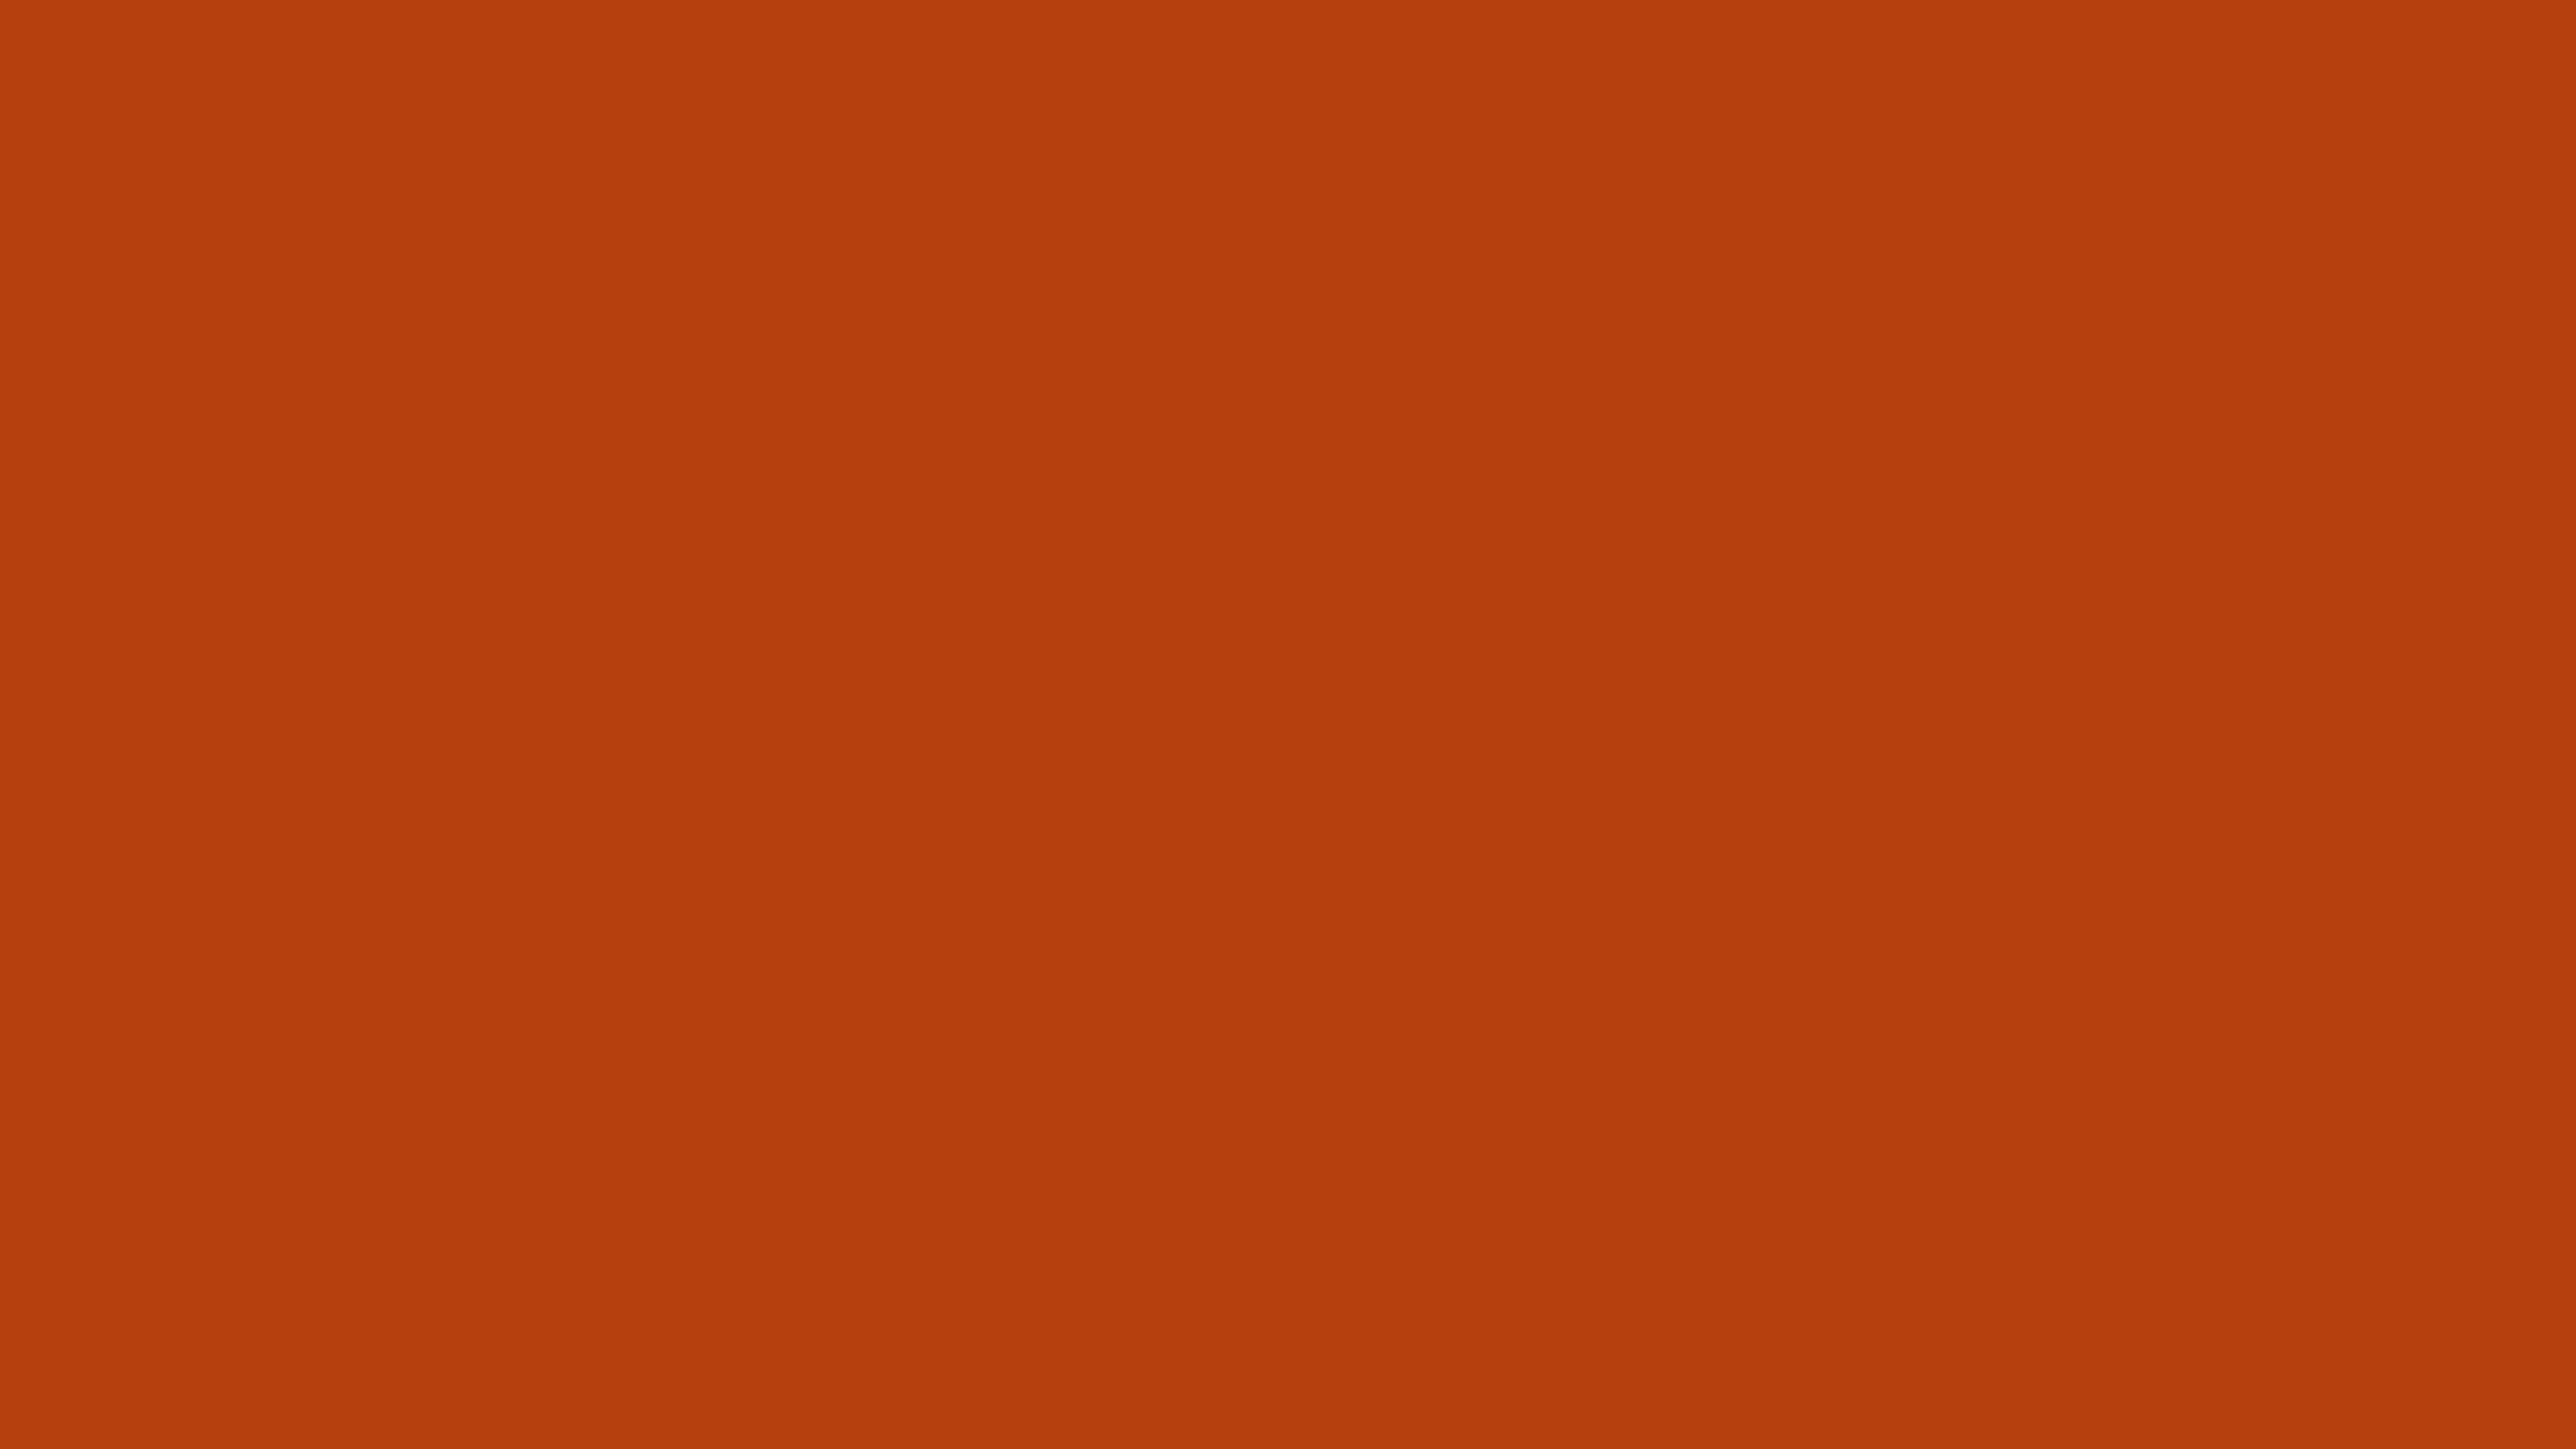 Rust Solid Color Background Wallpaper 5120x2880